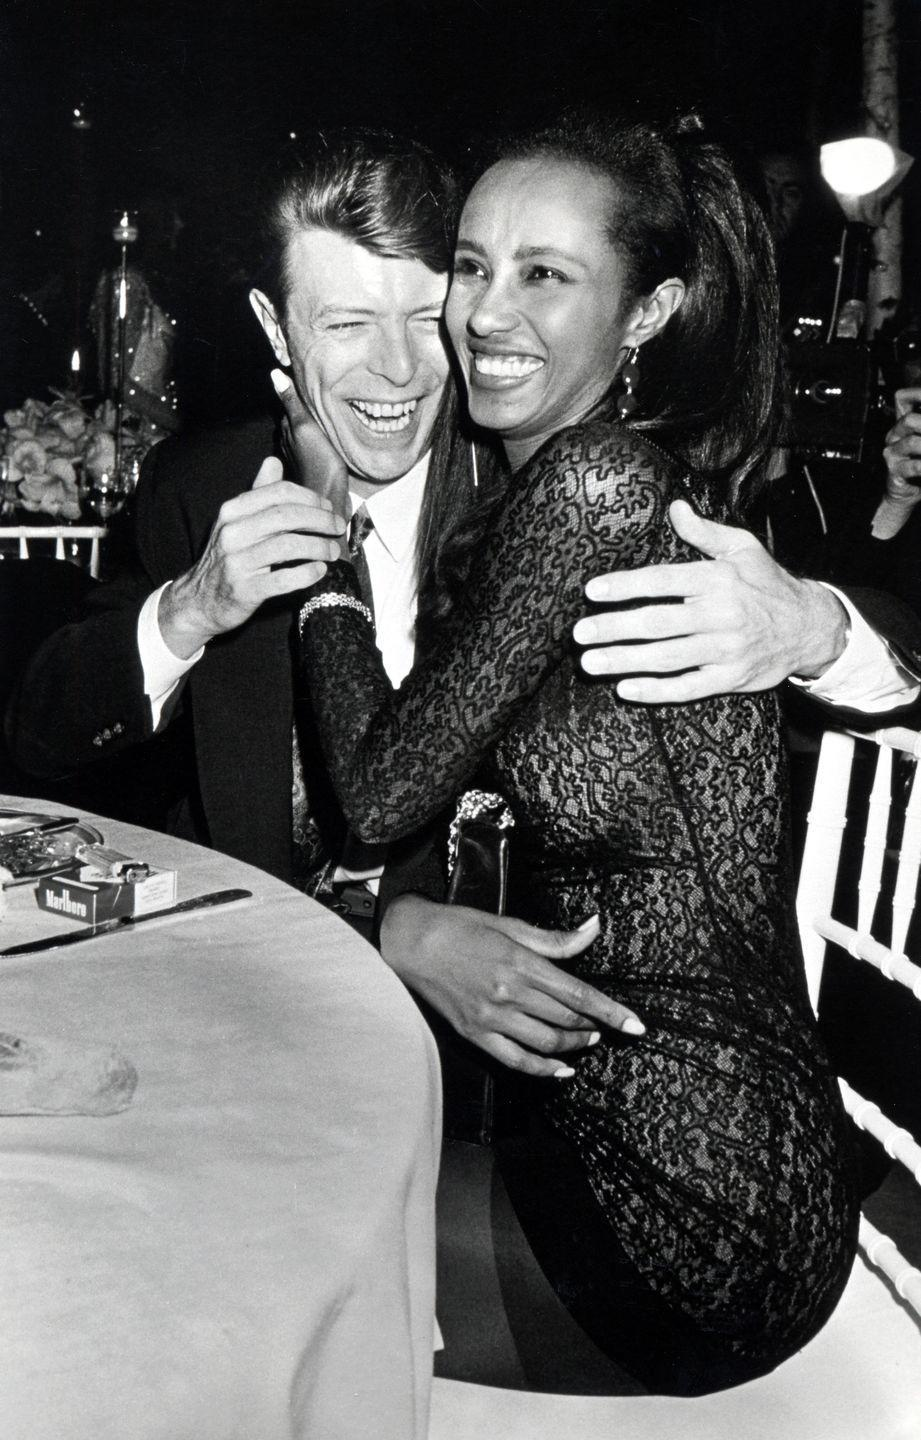 <p>Bowie and Iman were captured sharing a moment of affection at a 1990 event to benefit AIDS Research.</p>